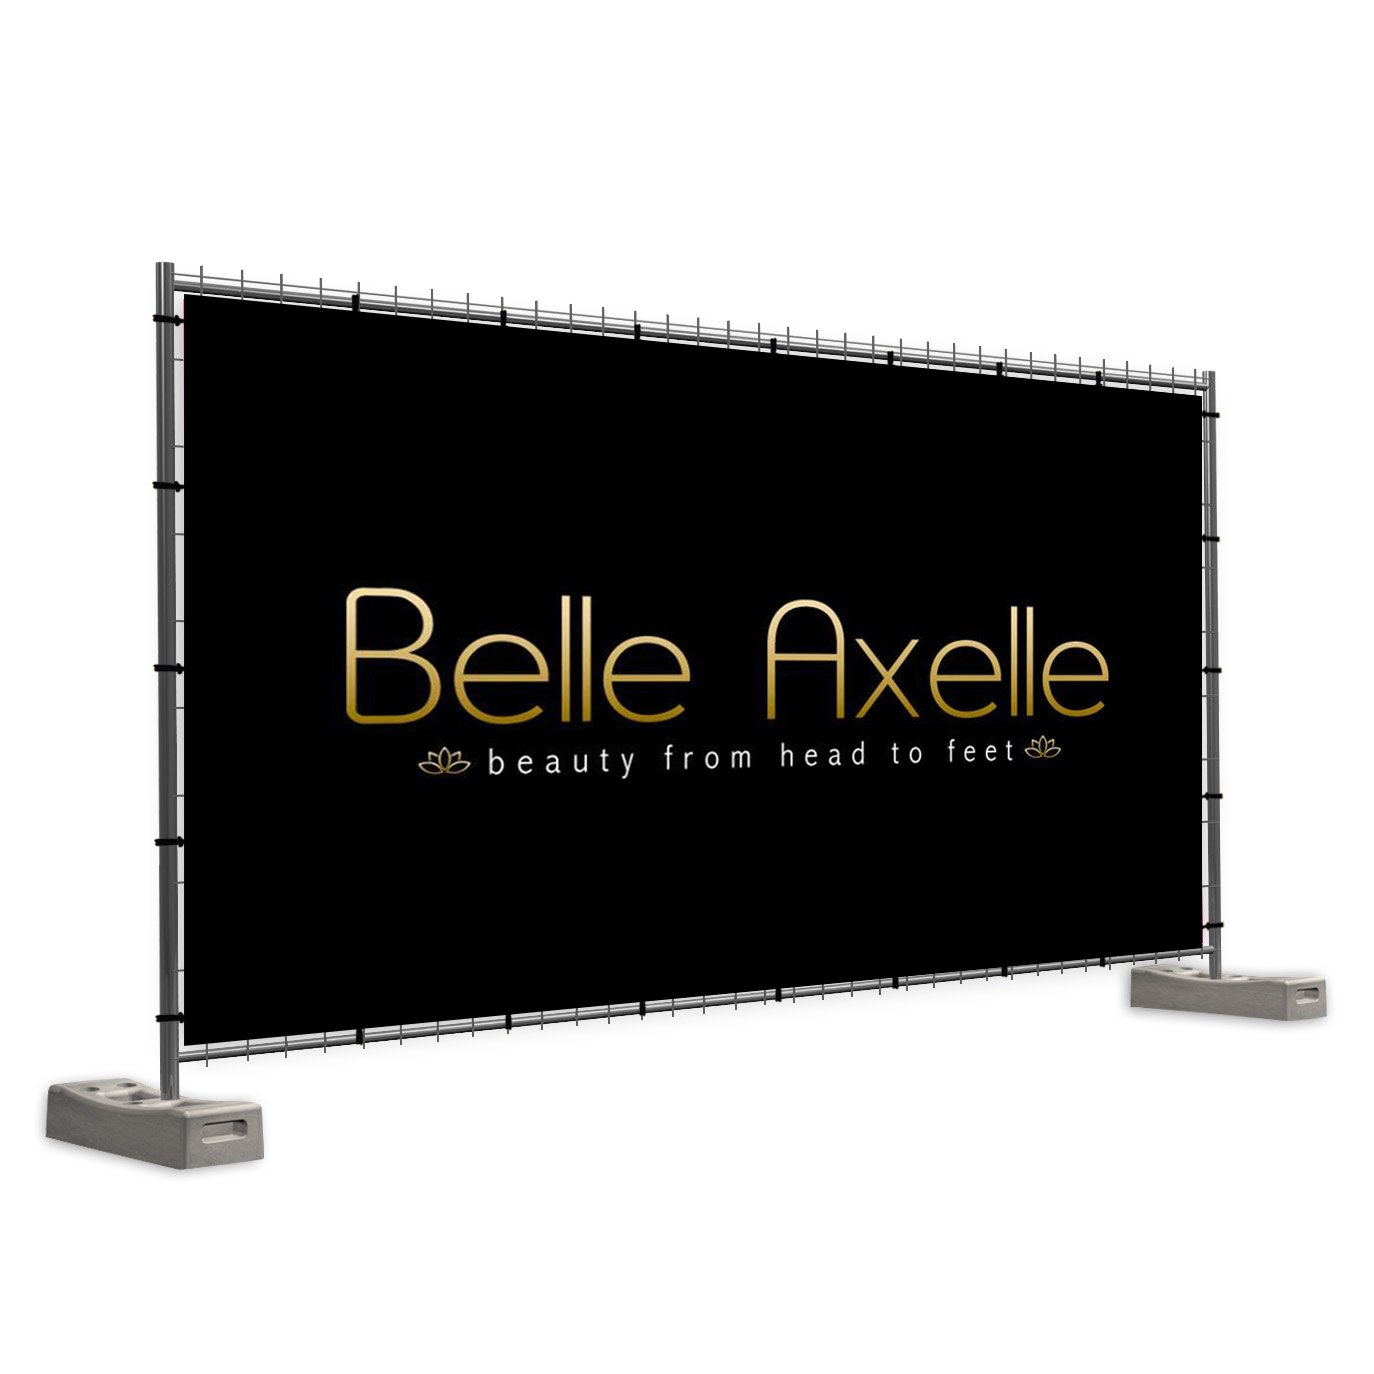 Fence-Banner-Belle-Axelle